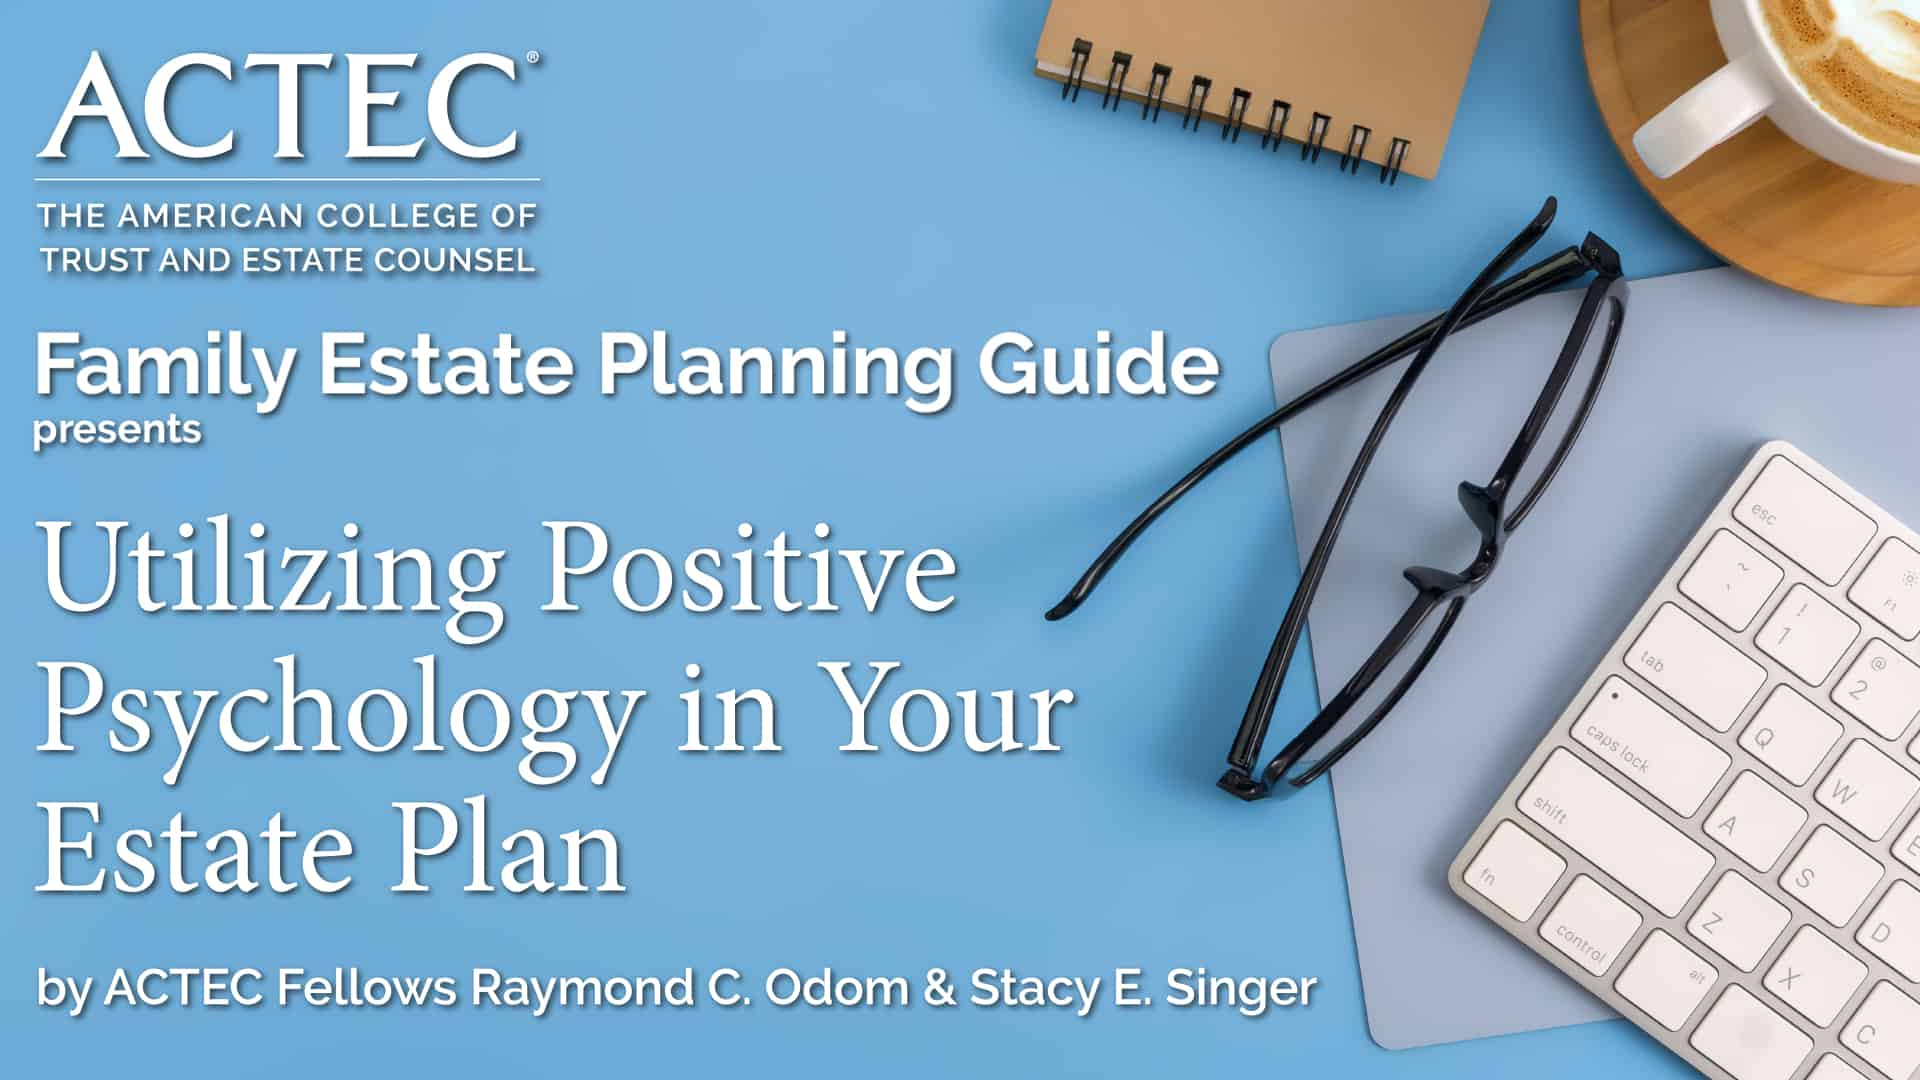 Utilizing Positive Psychology in Your Estate Plan